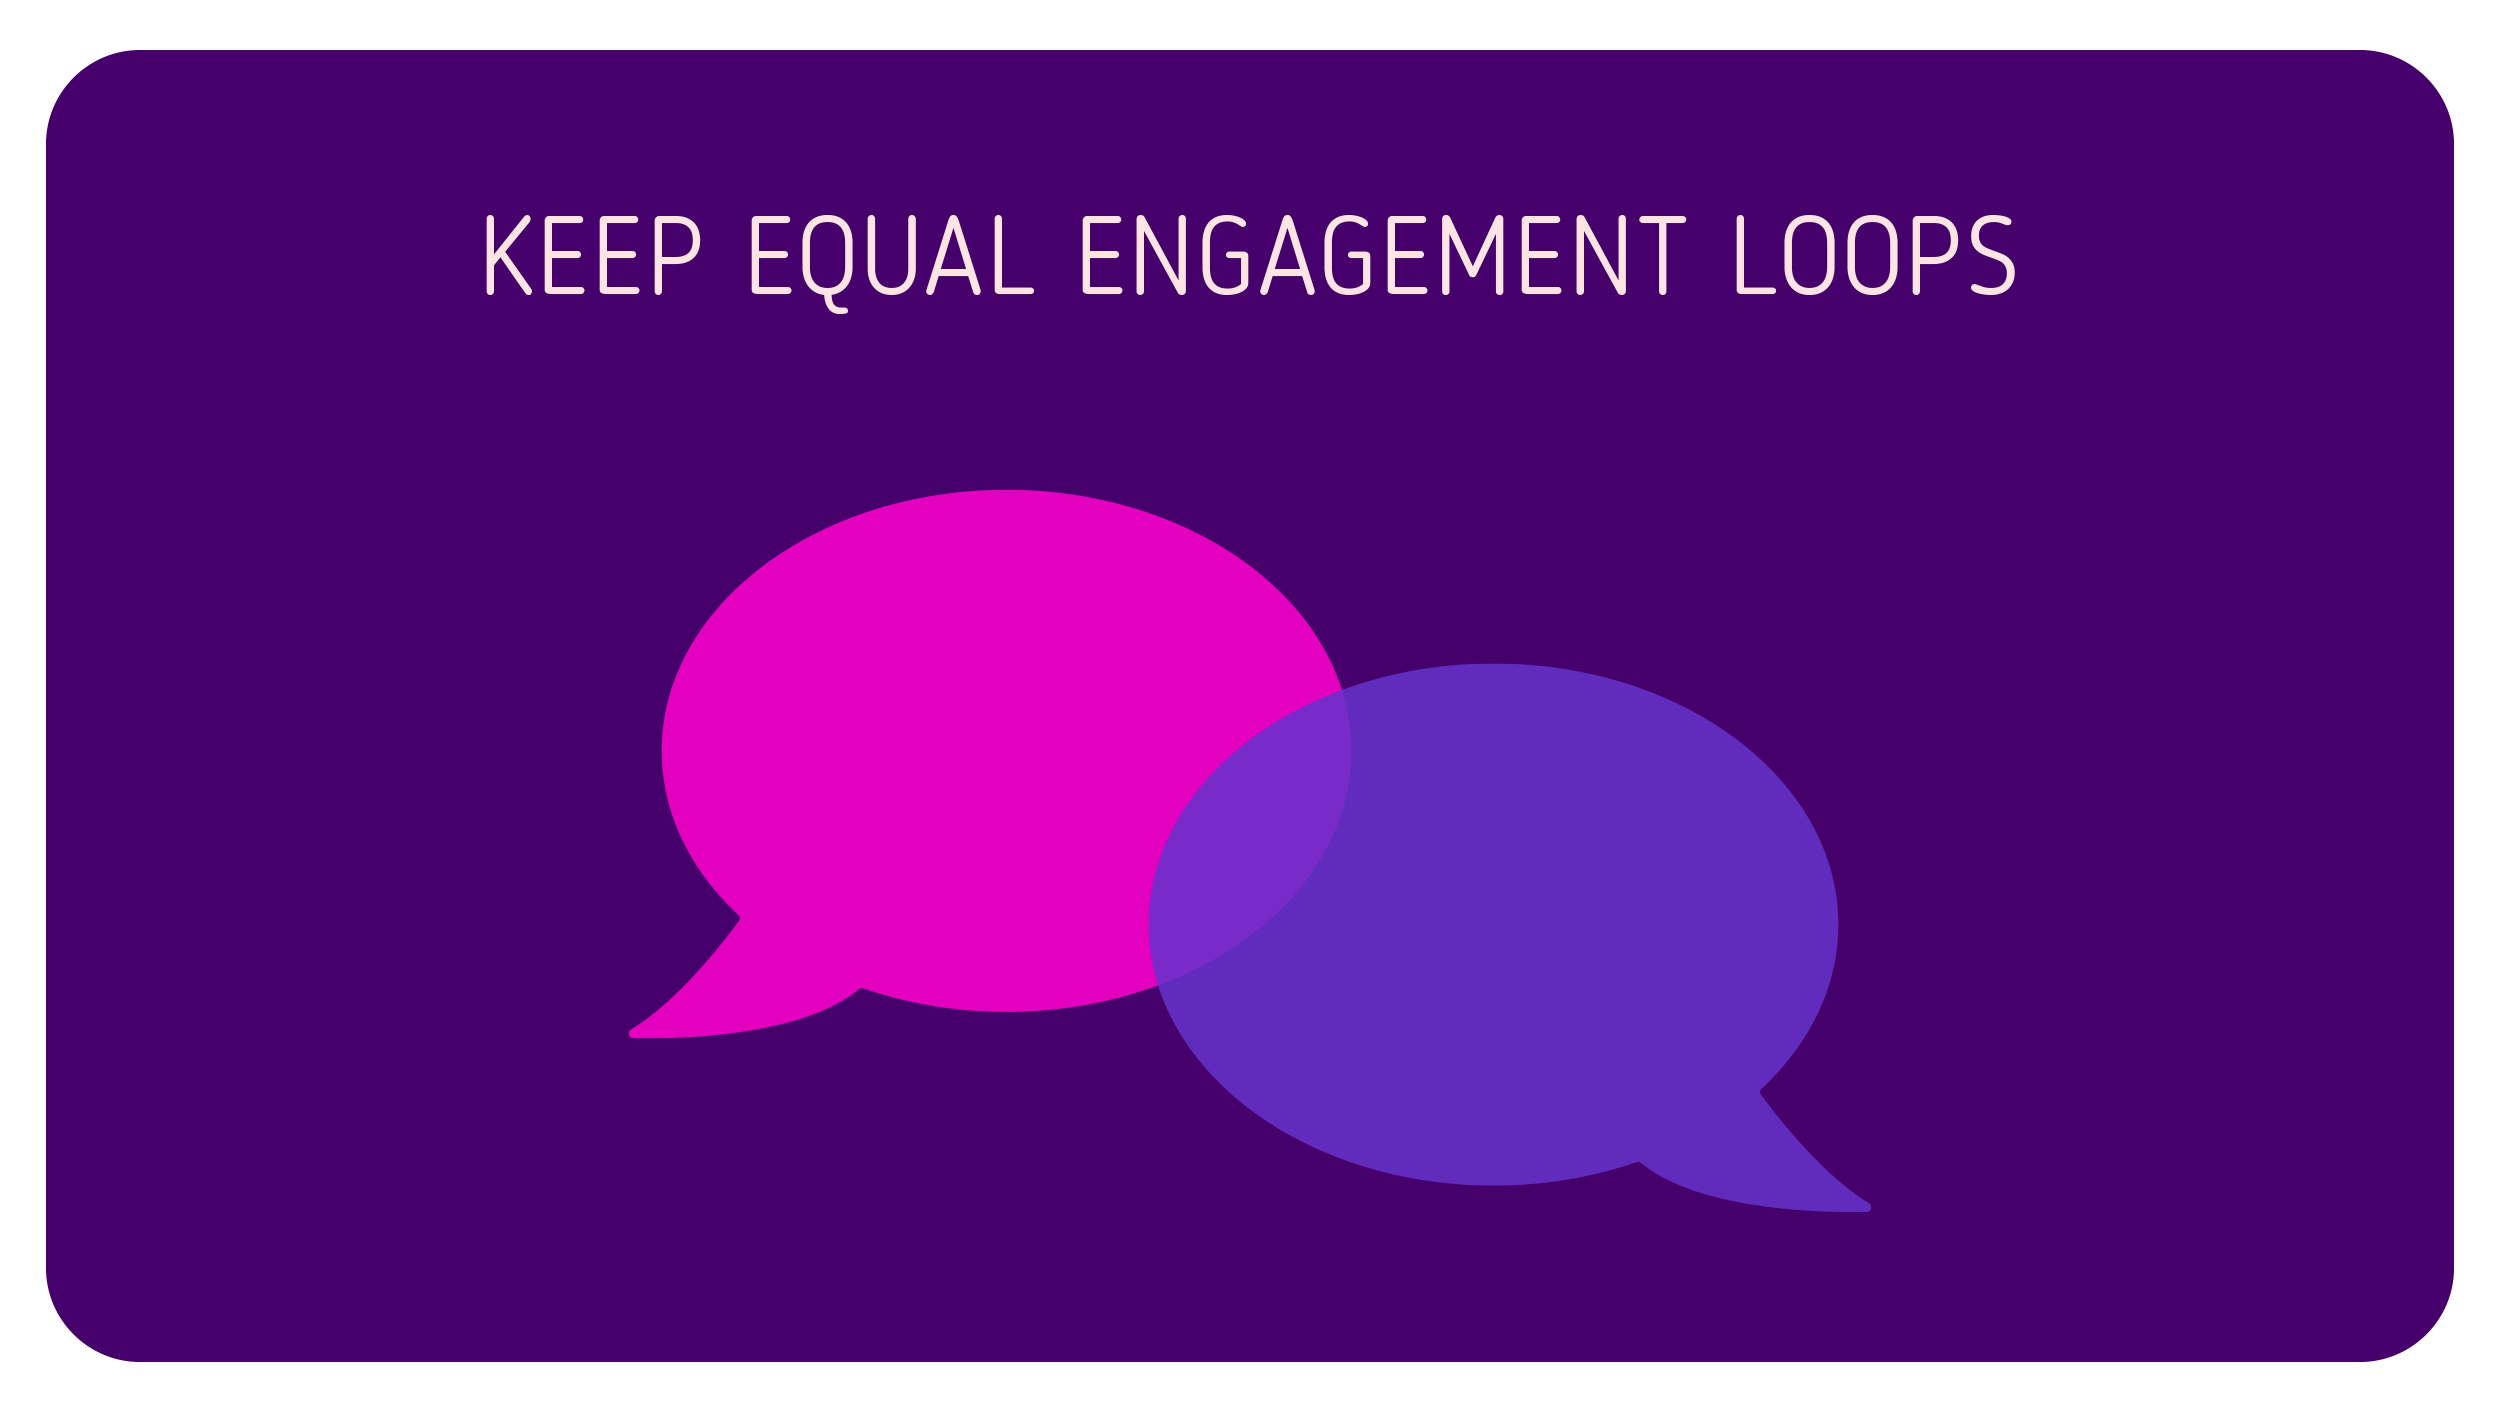 Equal Engagement Loops Infographic